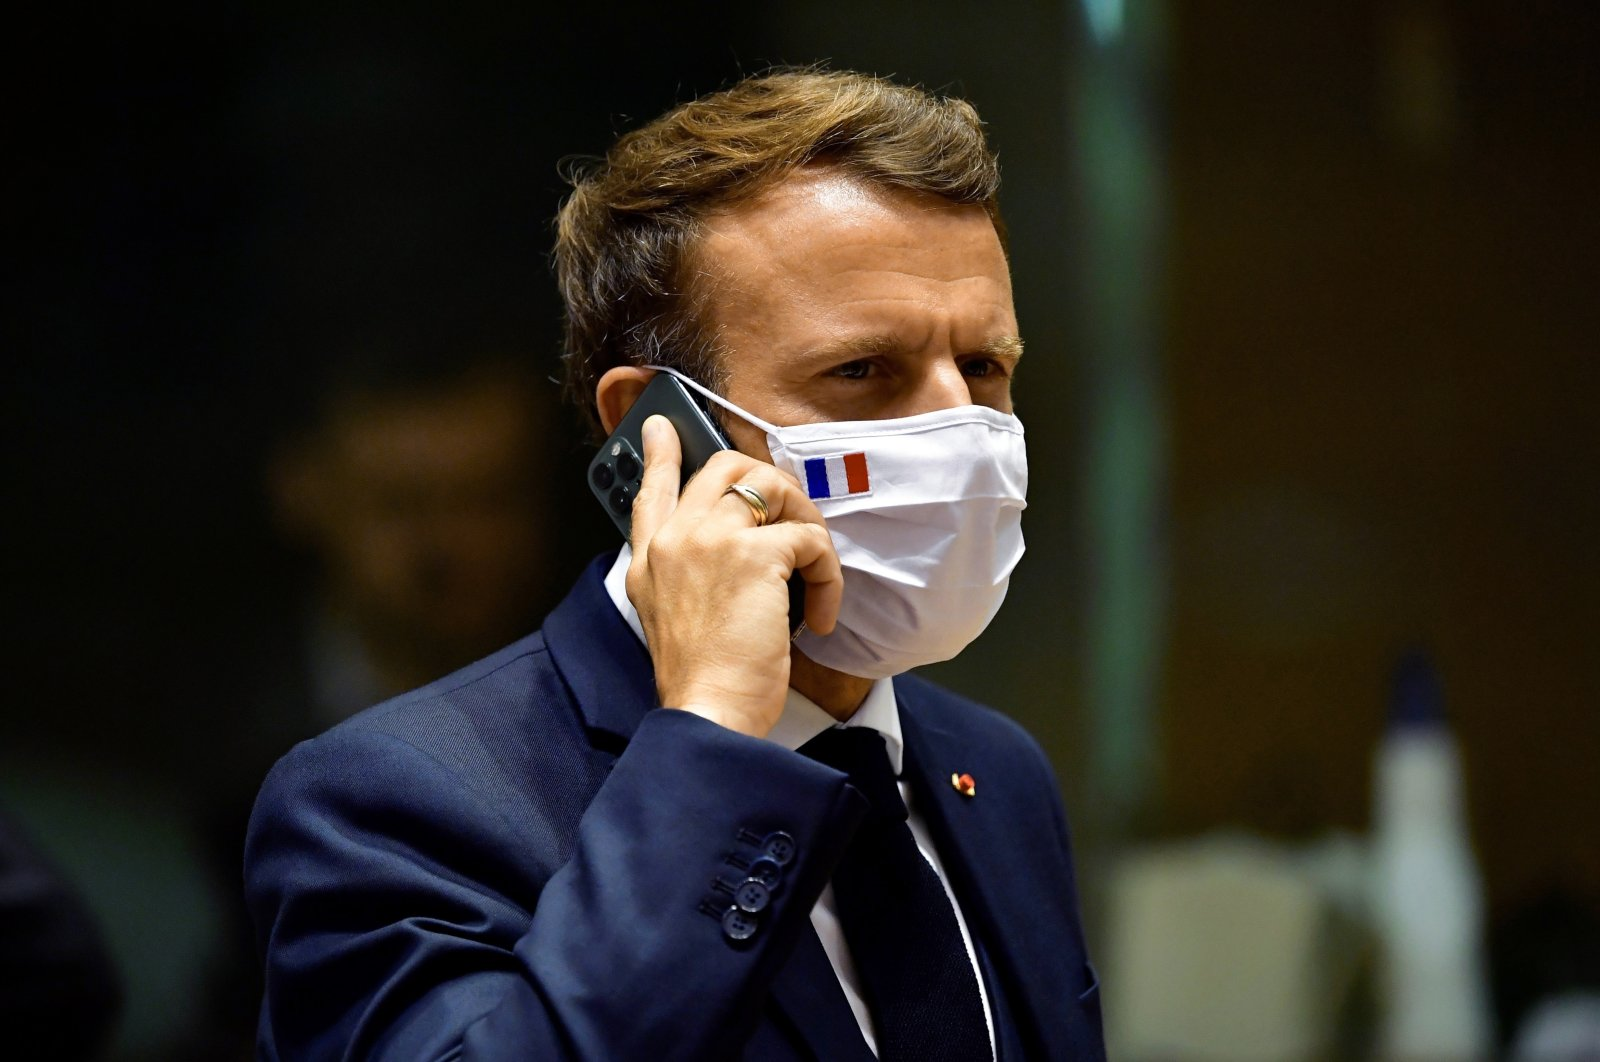 French President Emmanuel Macron speaks on his mobile phone during a round table meeting at an EU summit in Brussels, Belgium, July 20, 2020. (AP File Photo)